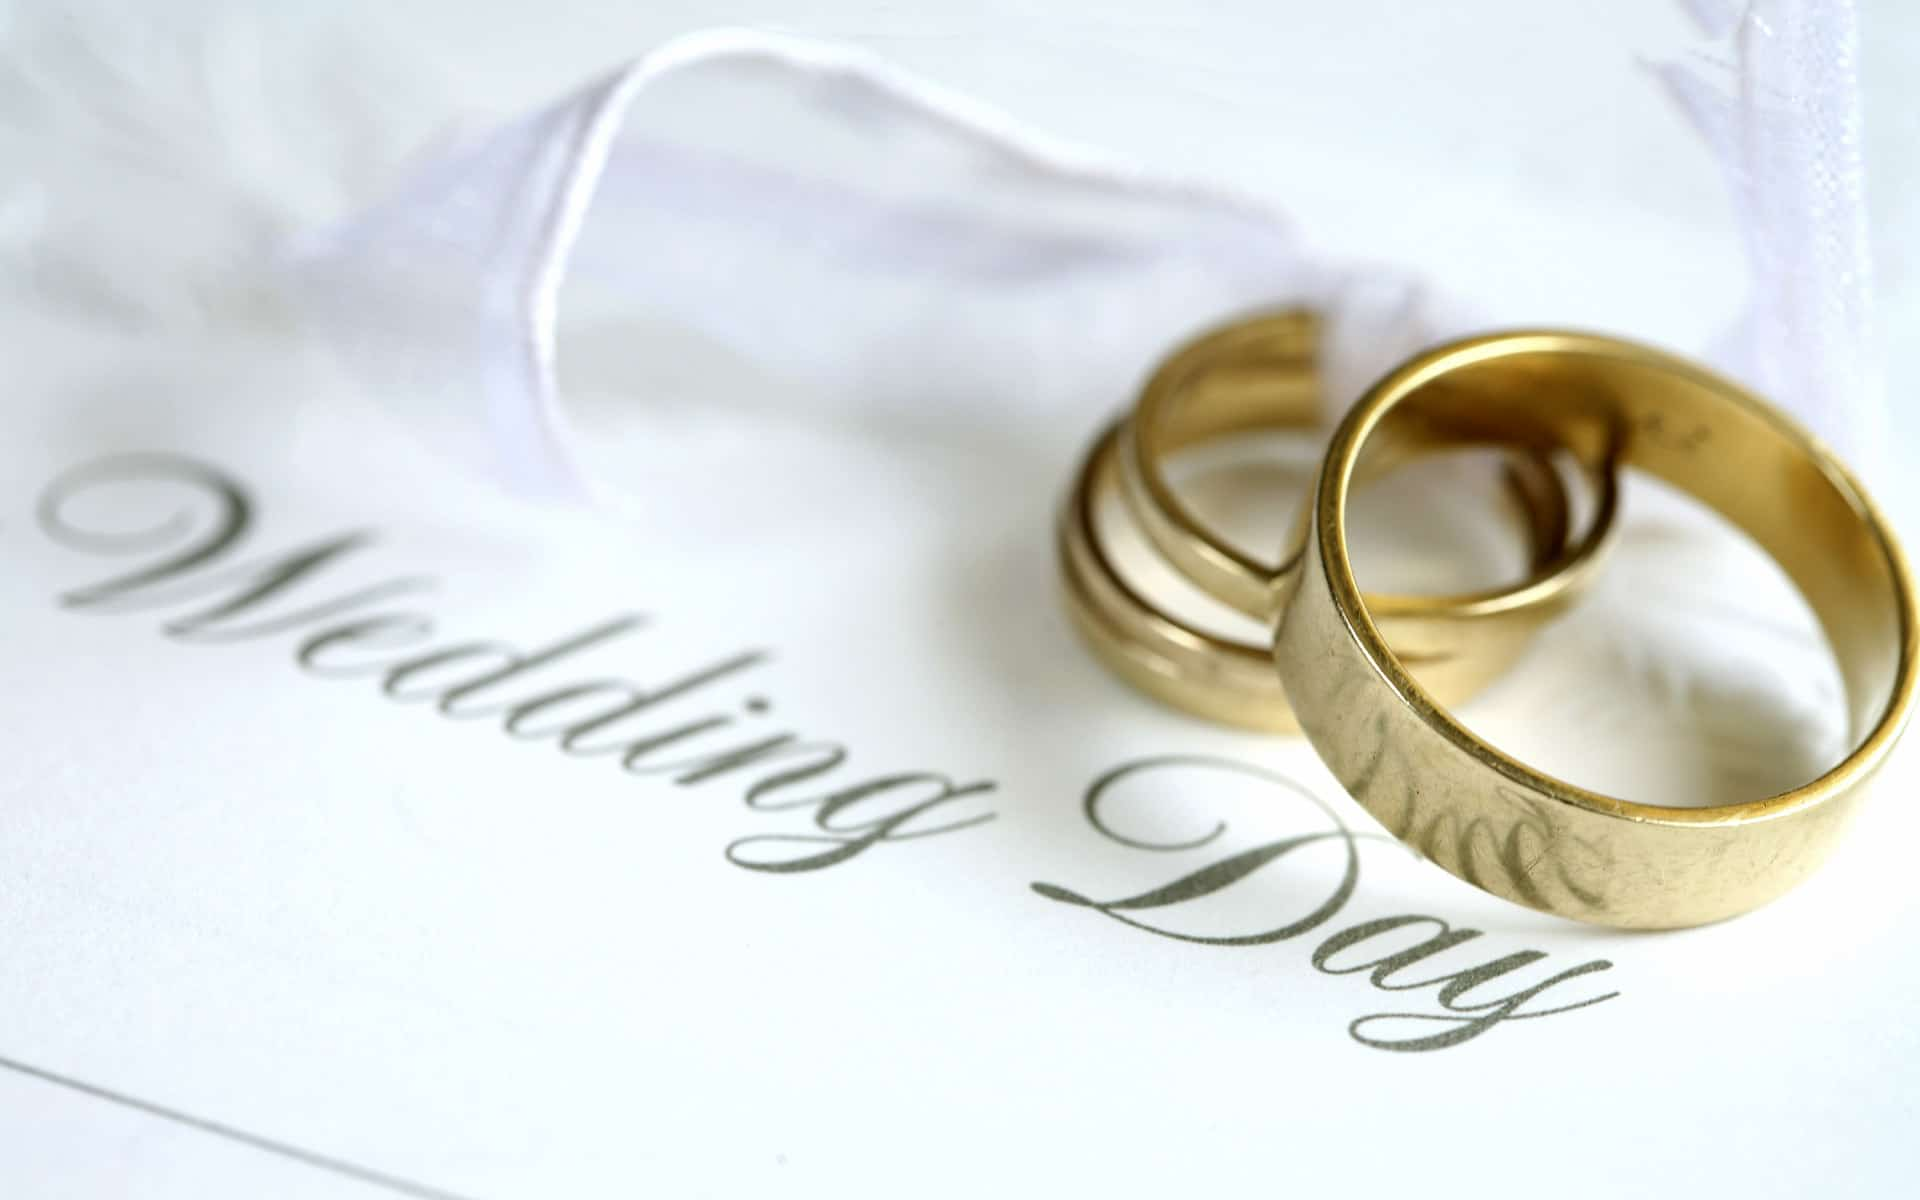 Miami Cosmetic Dentistry Breaks Into the Wedding Industry